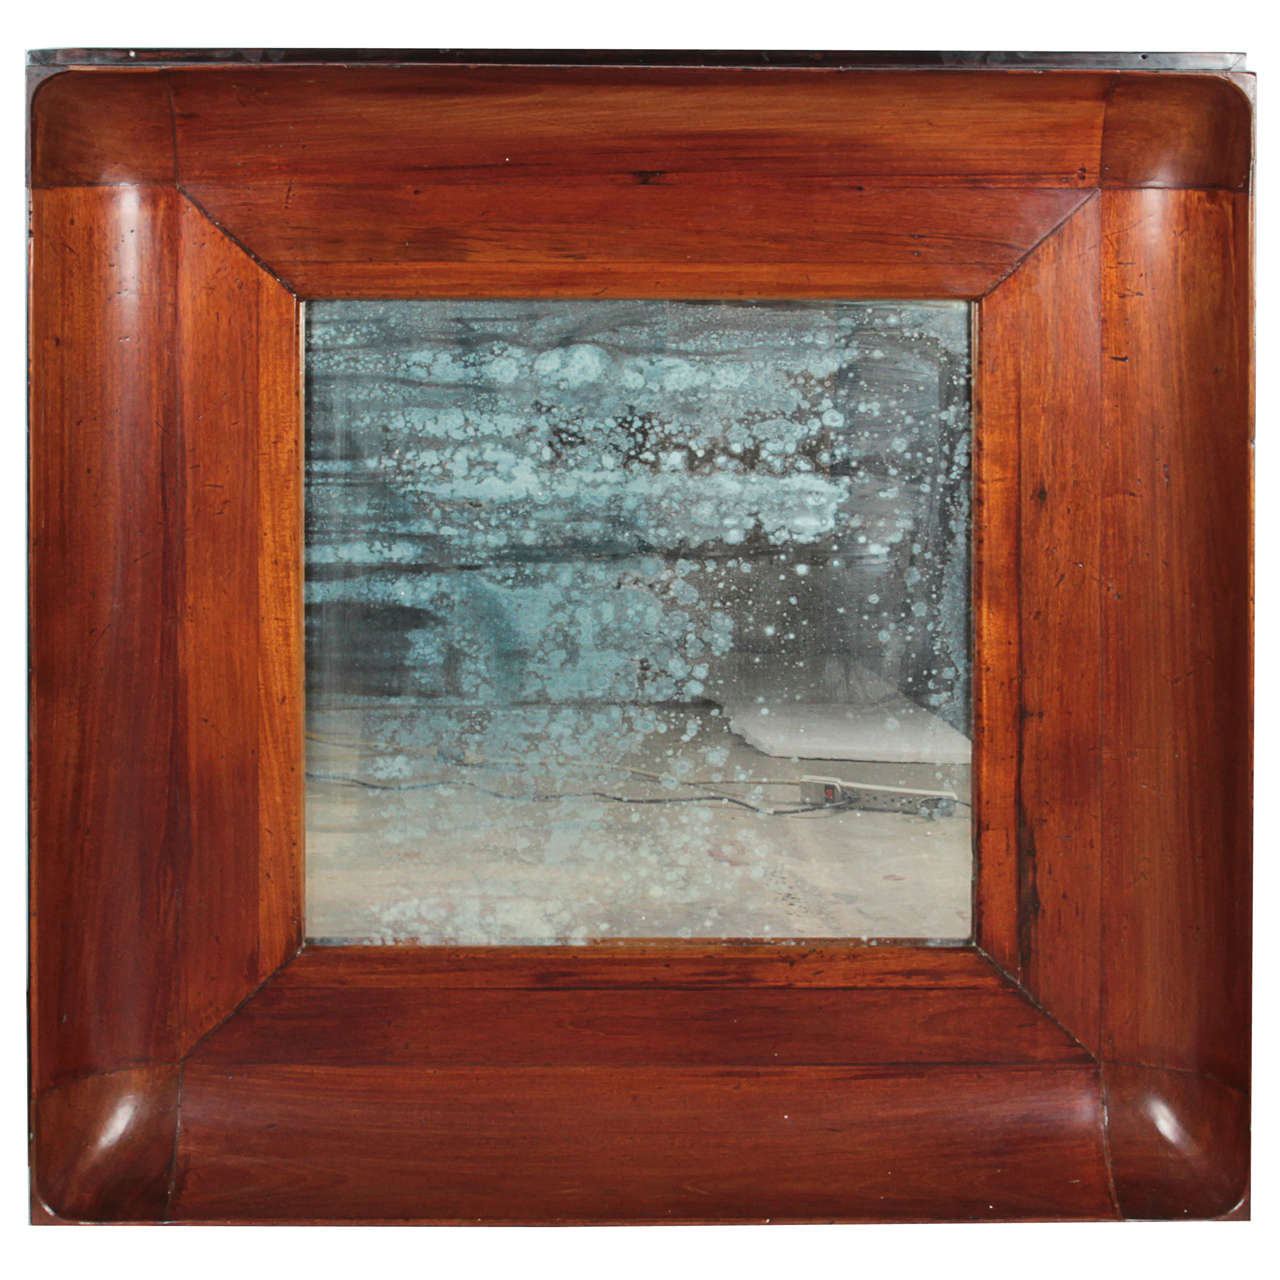 Wooden Concave Framed Patina Mirror